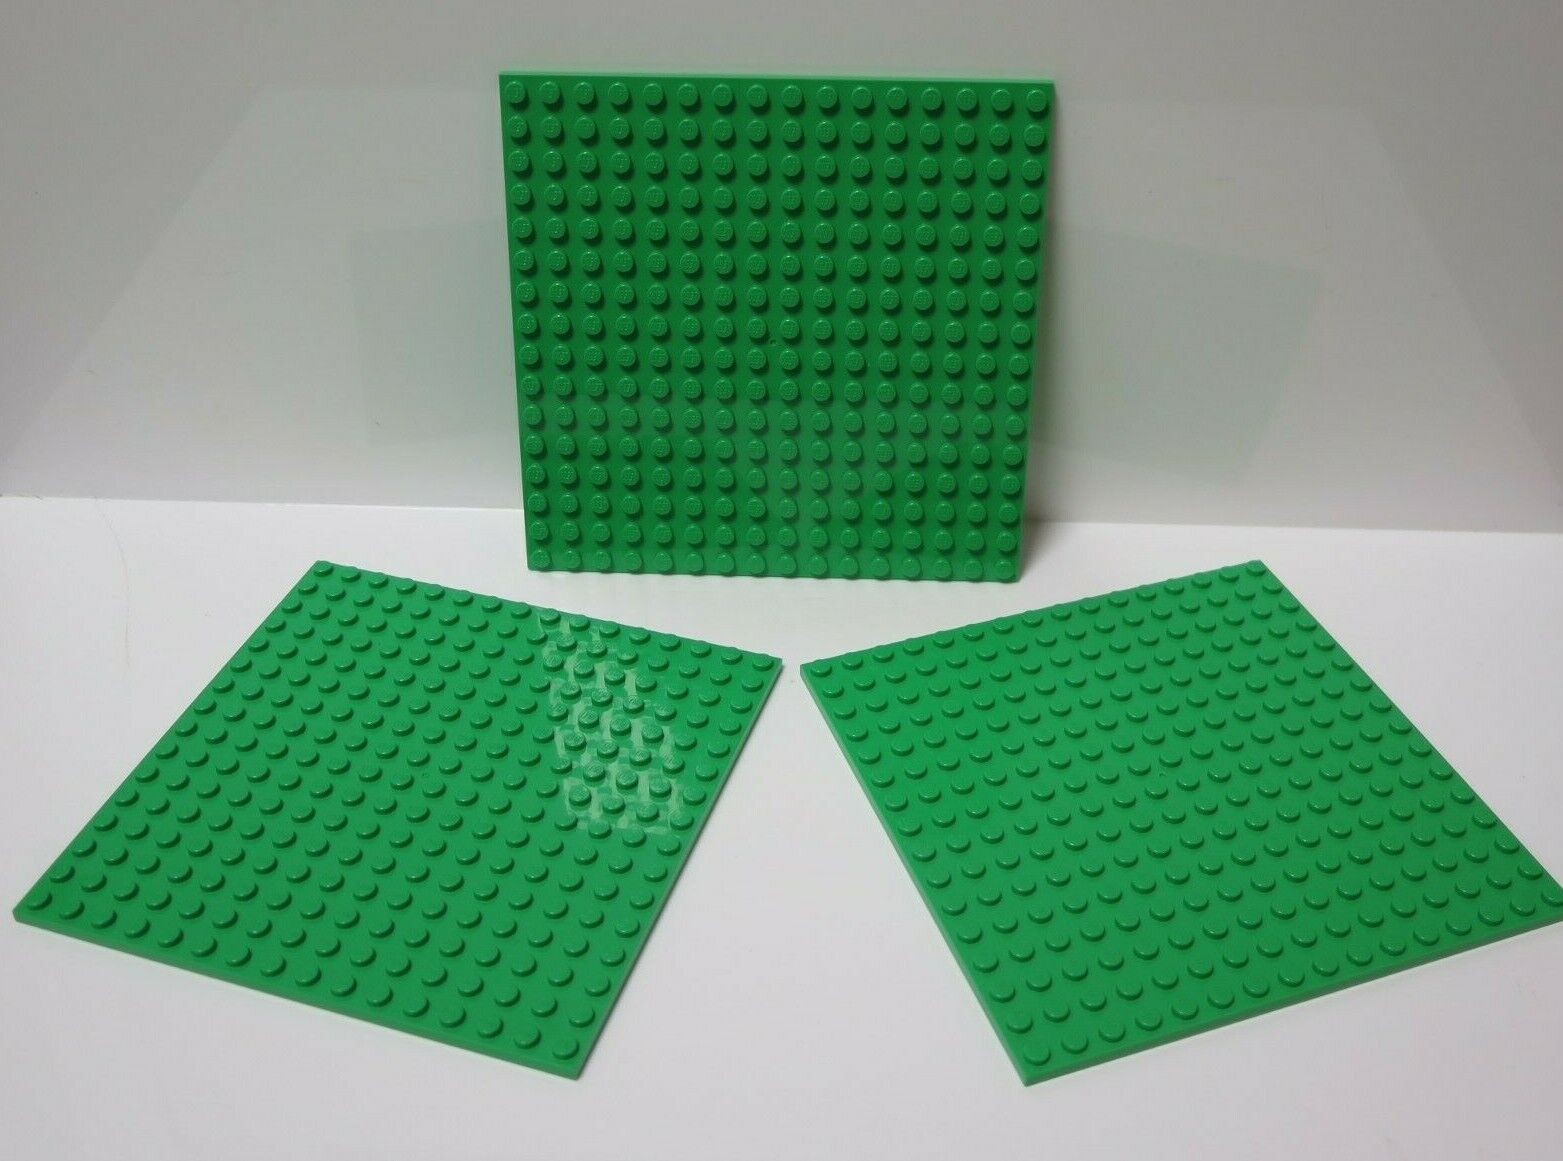 Lego 5 New Green Plates 1 x 3 Dot Pieces Parts